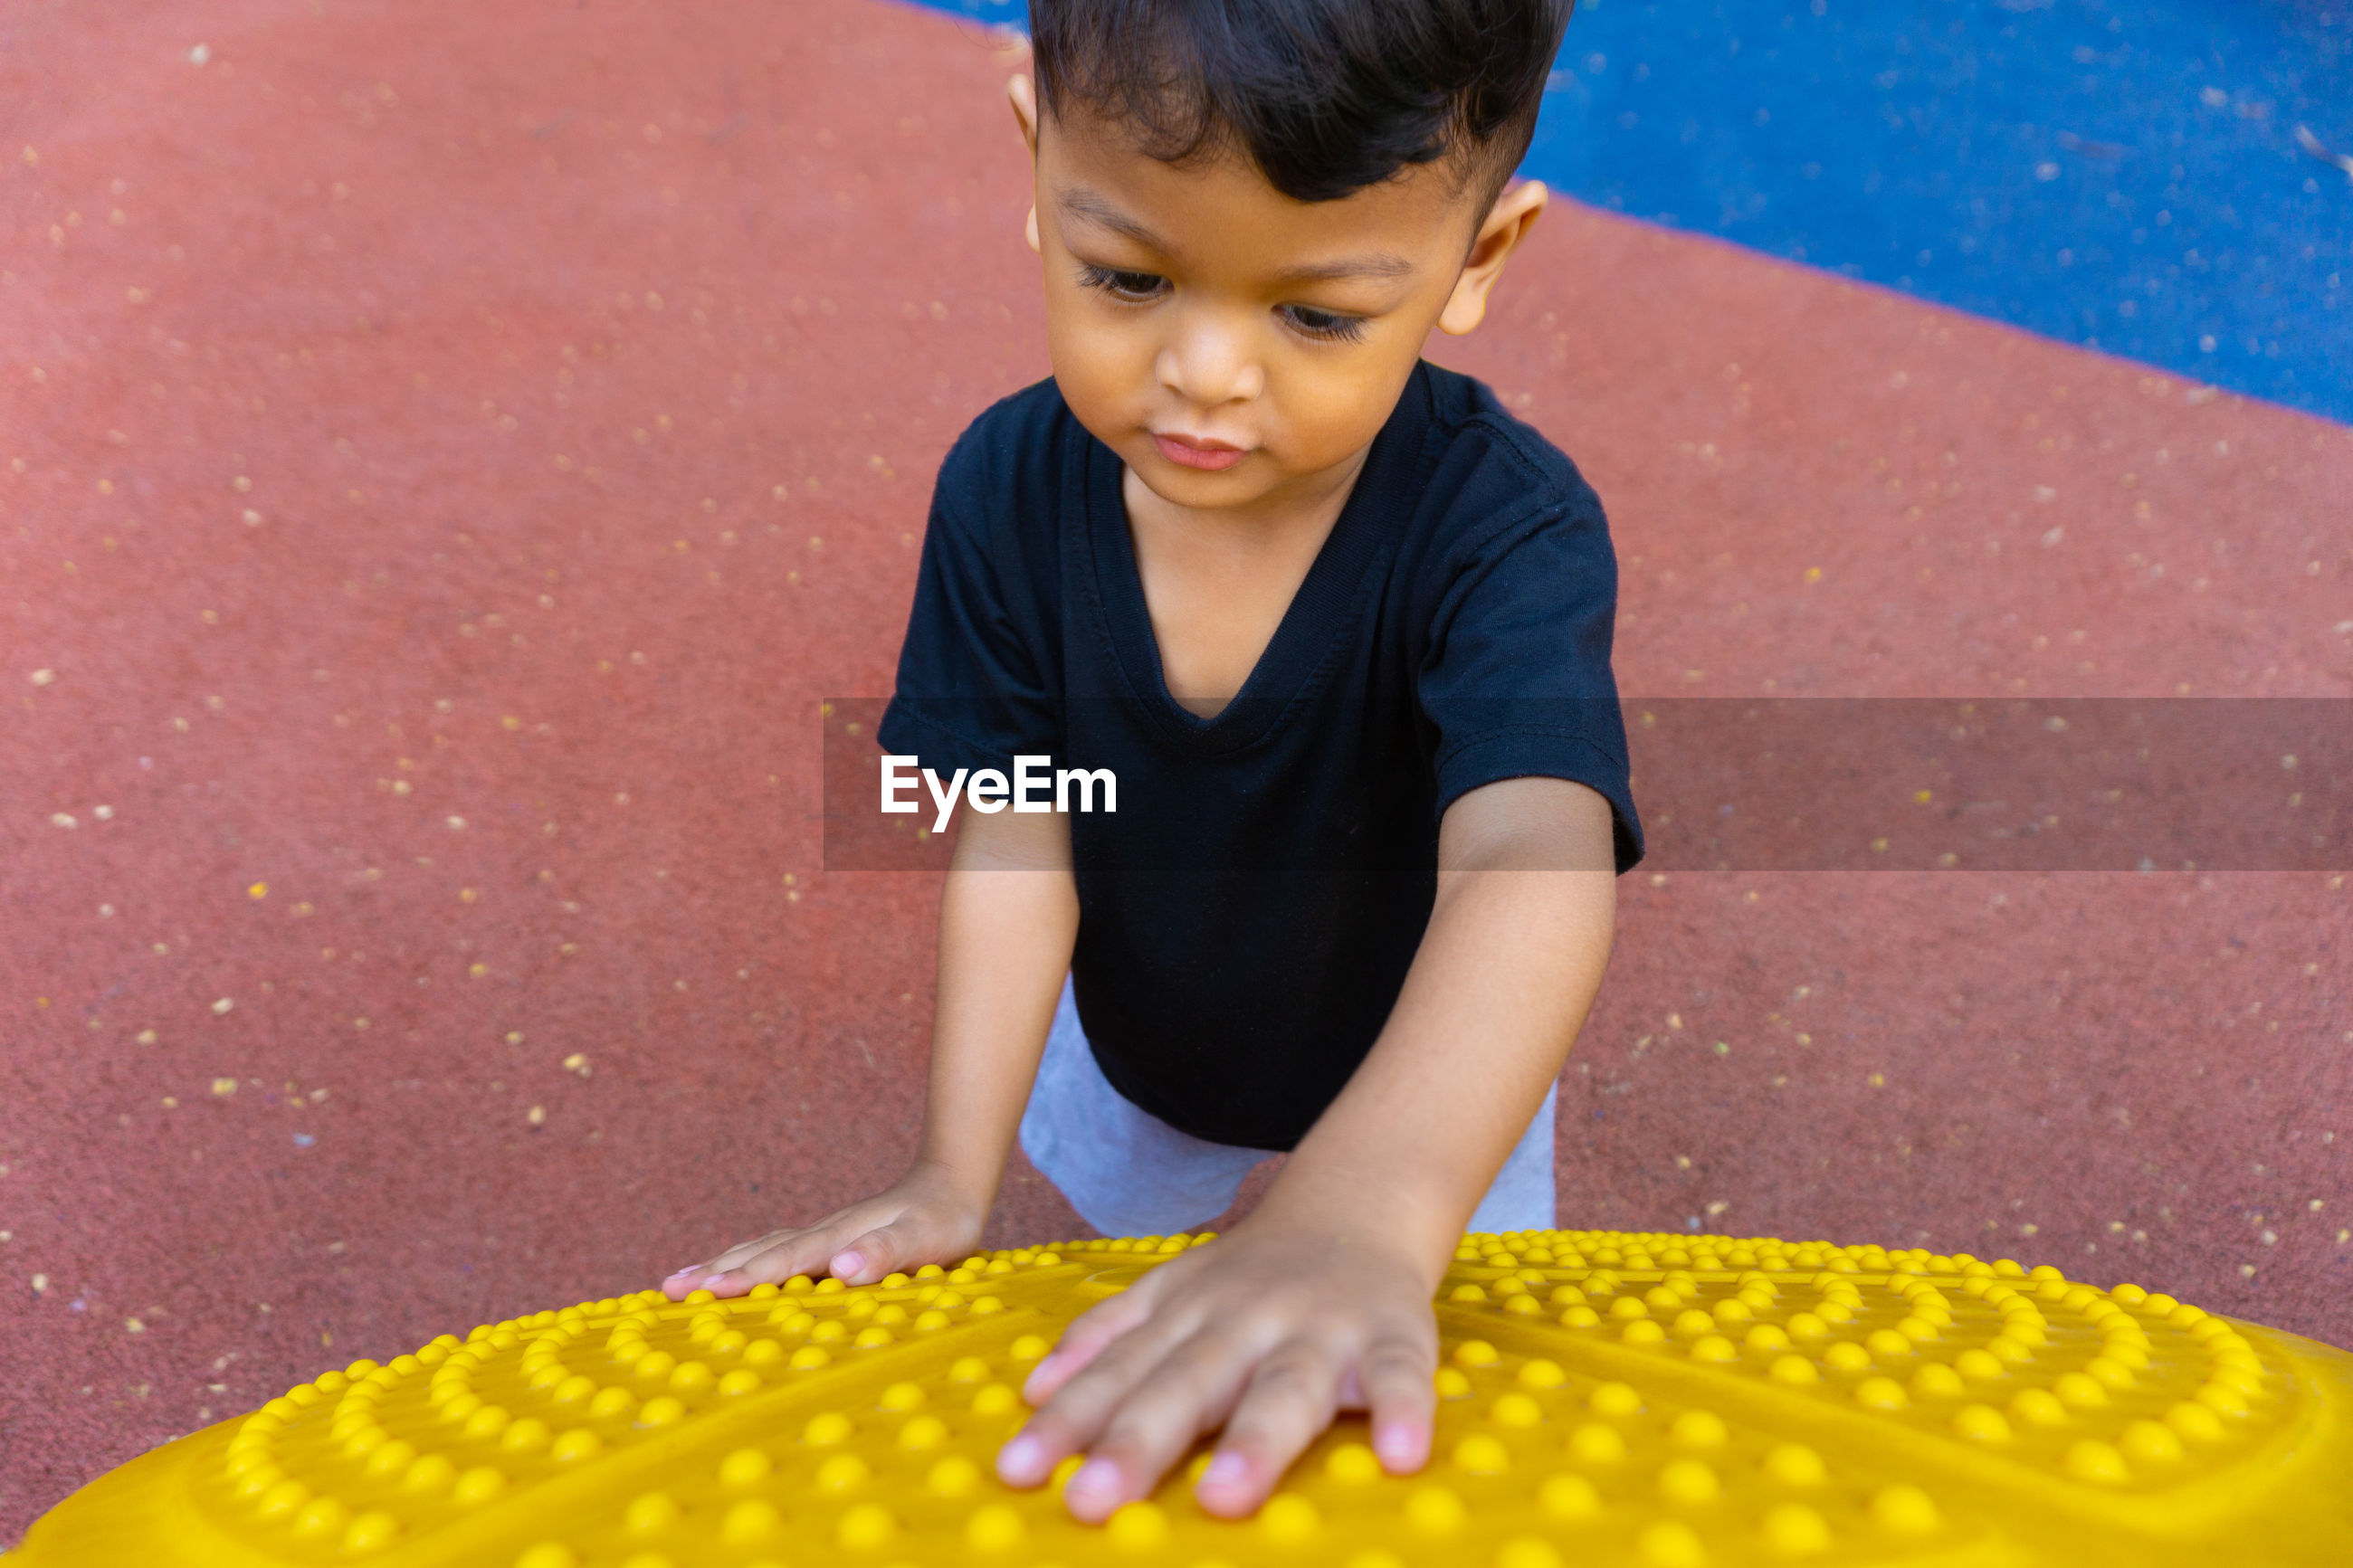 High angle view of boy playing with outdoor play equipment